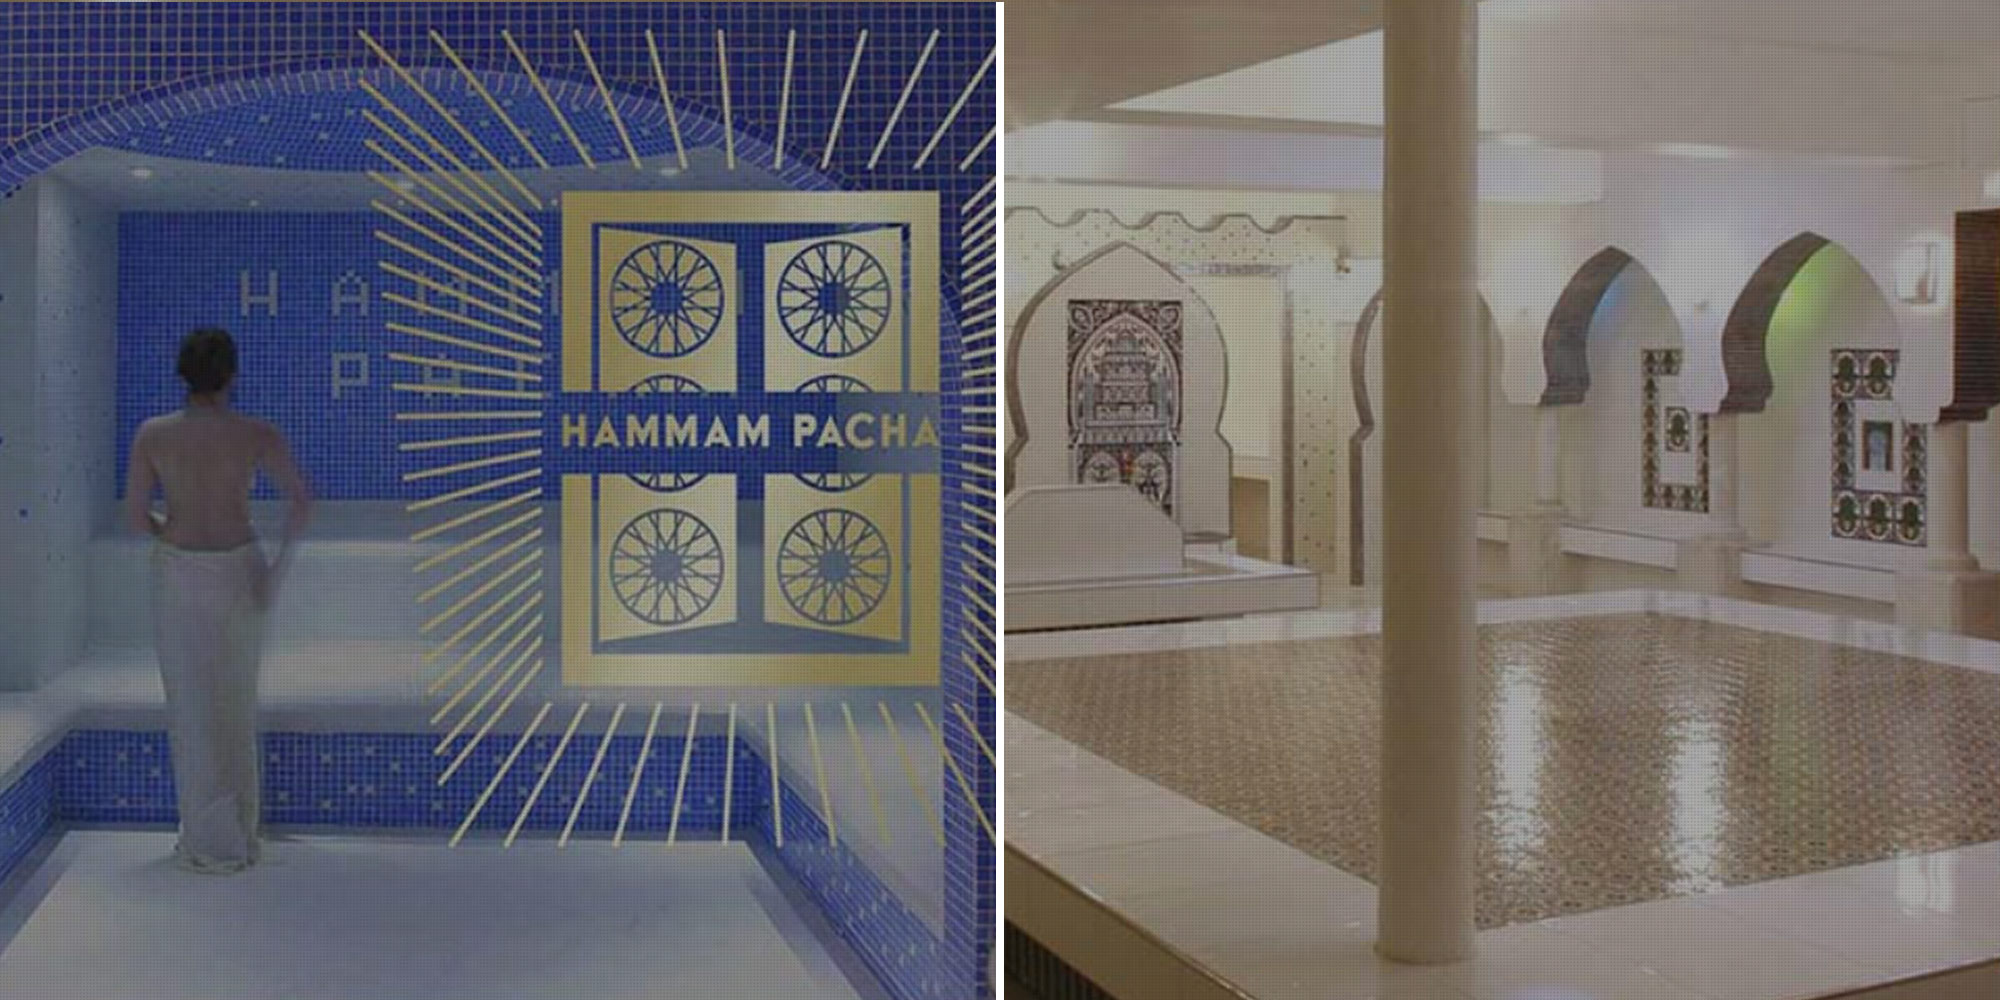 The best place to go for a hammam in Paris is Hammam Pacha for its blue tiled decor (left) and spacious steam room space (right).